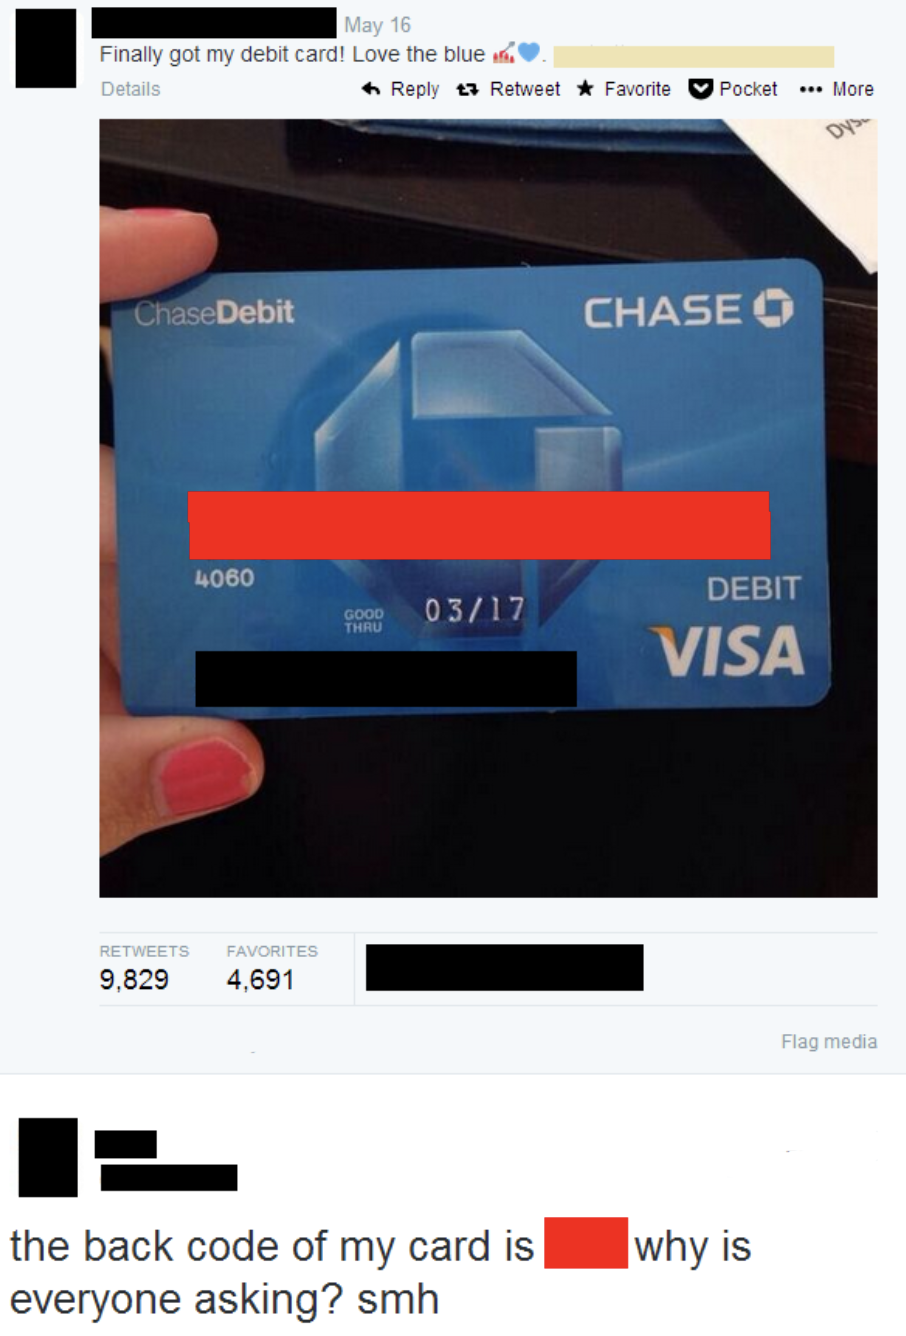 someone giving away their credit card number on twitter